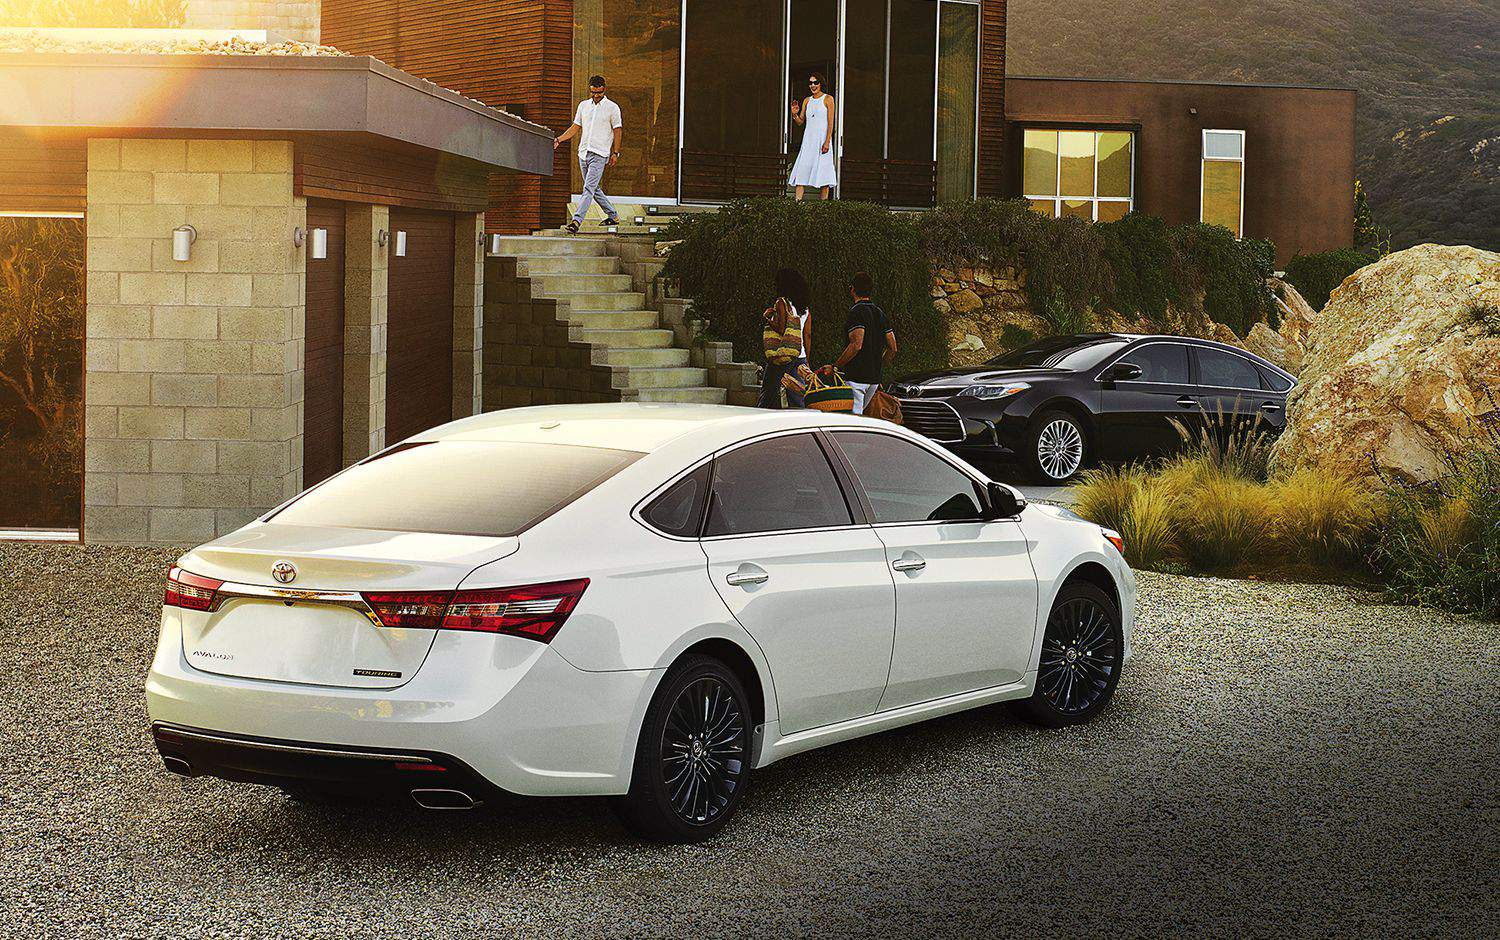 Avalon Touring shown in Blizzard Pearl and Limited shown in Magnetic Grey Metallic